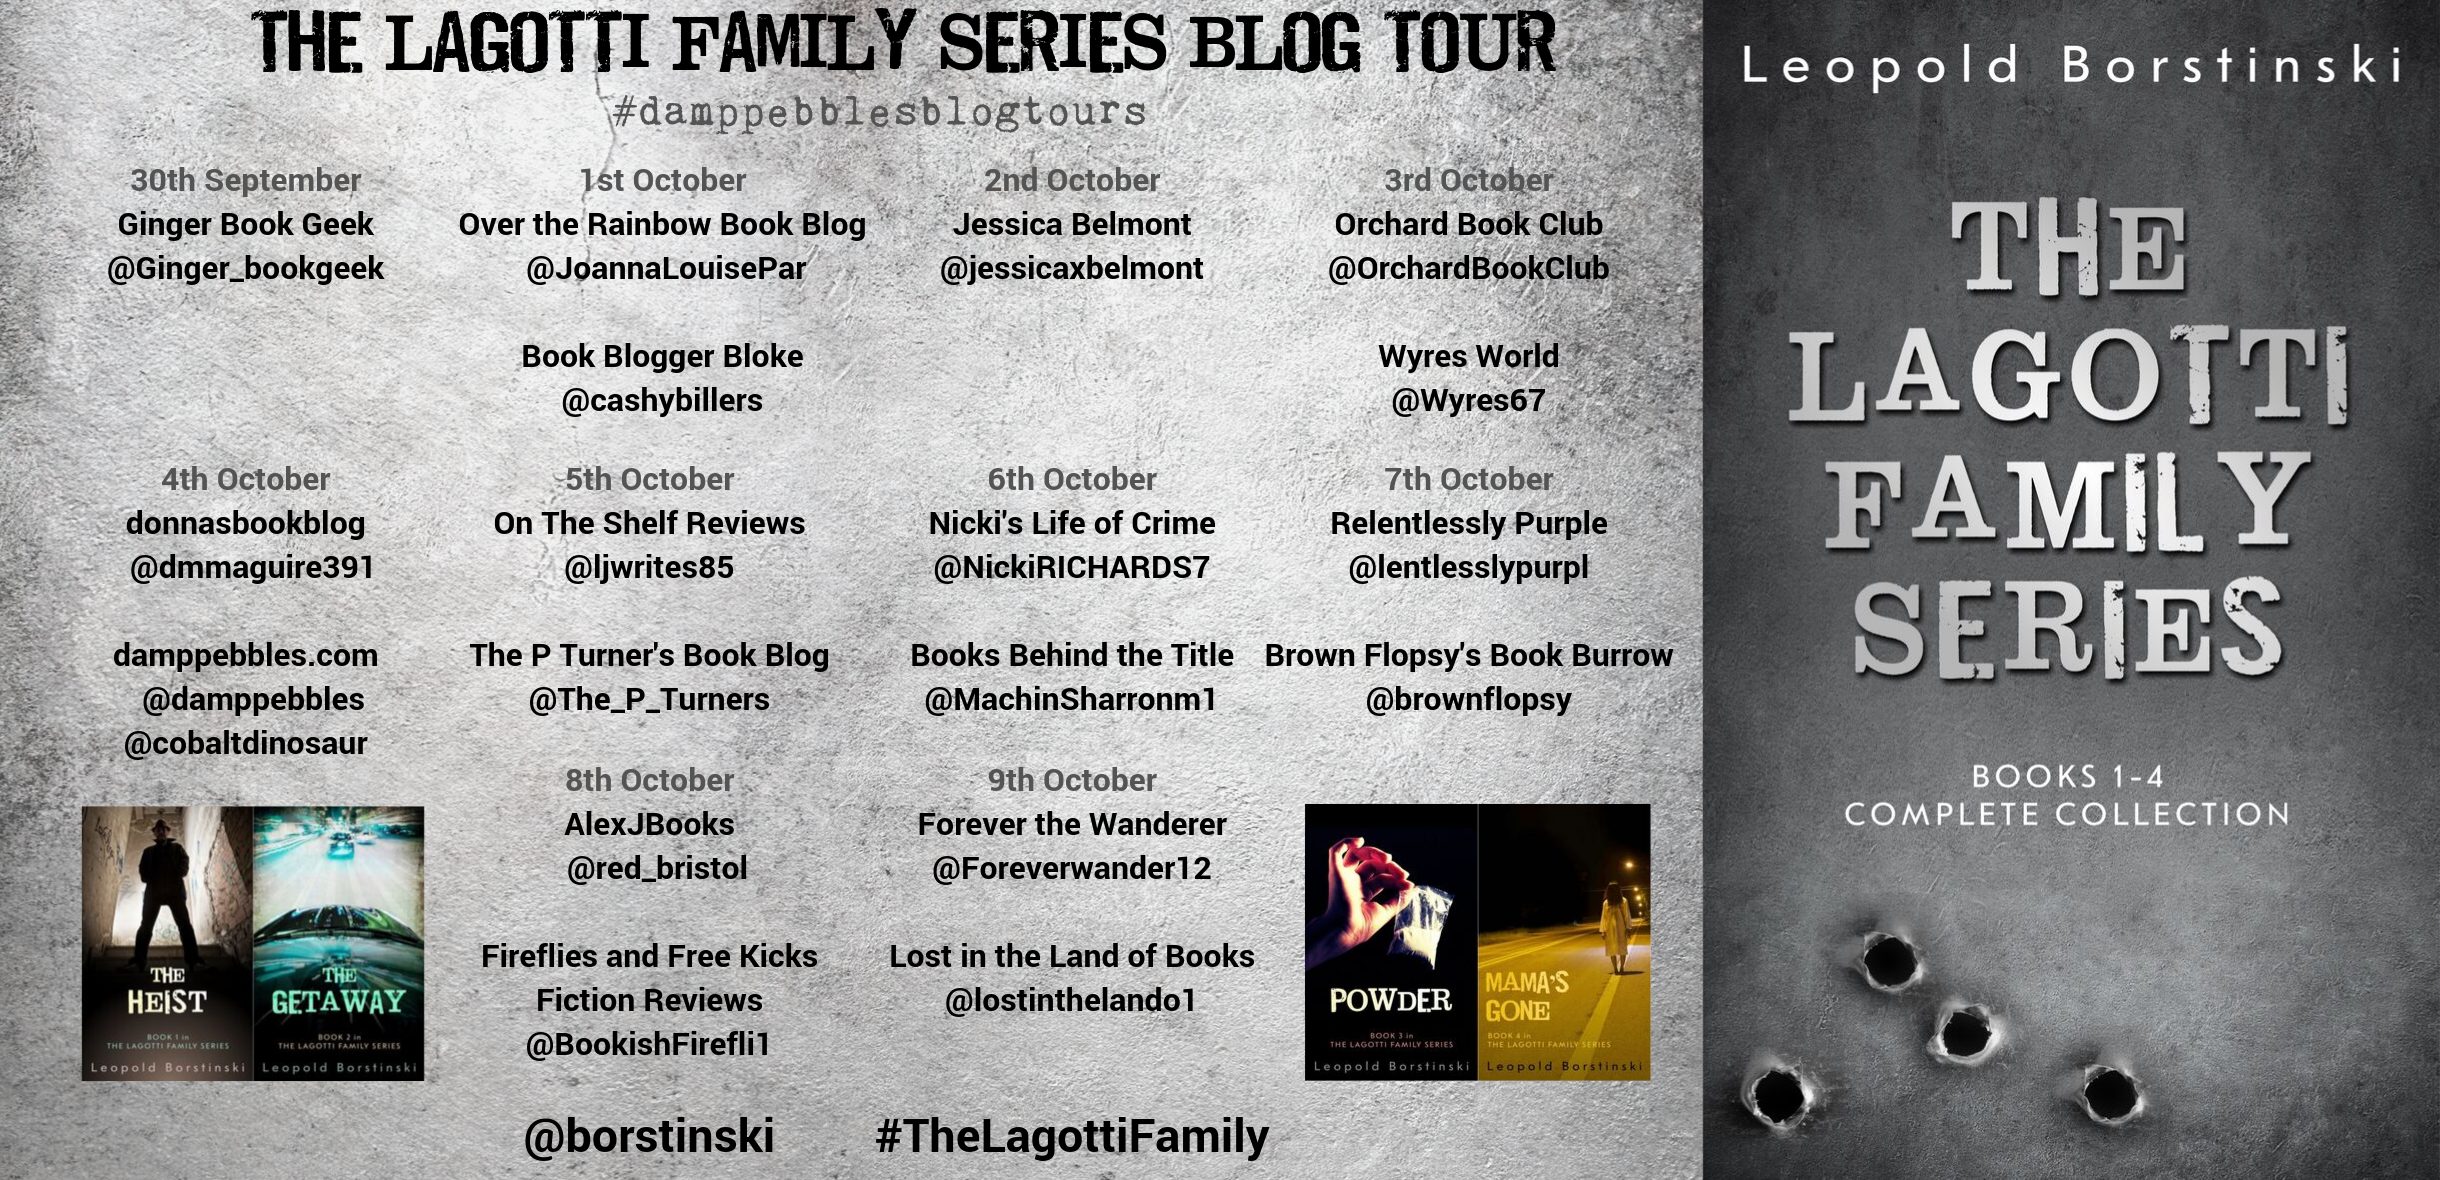 The Lagotti Family Series Blog Tour Banner